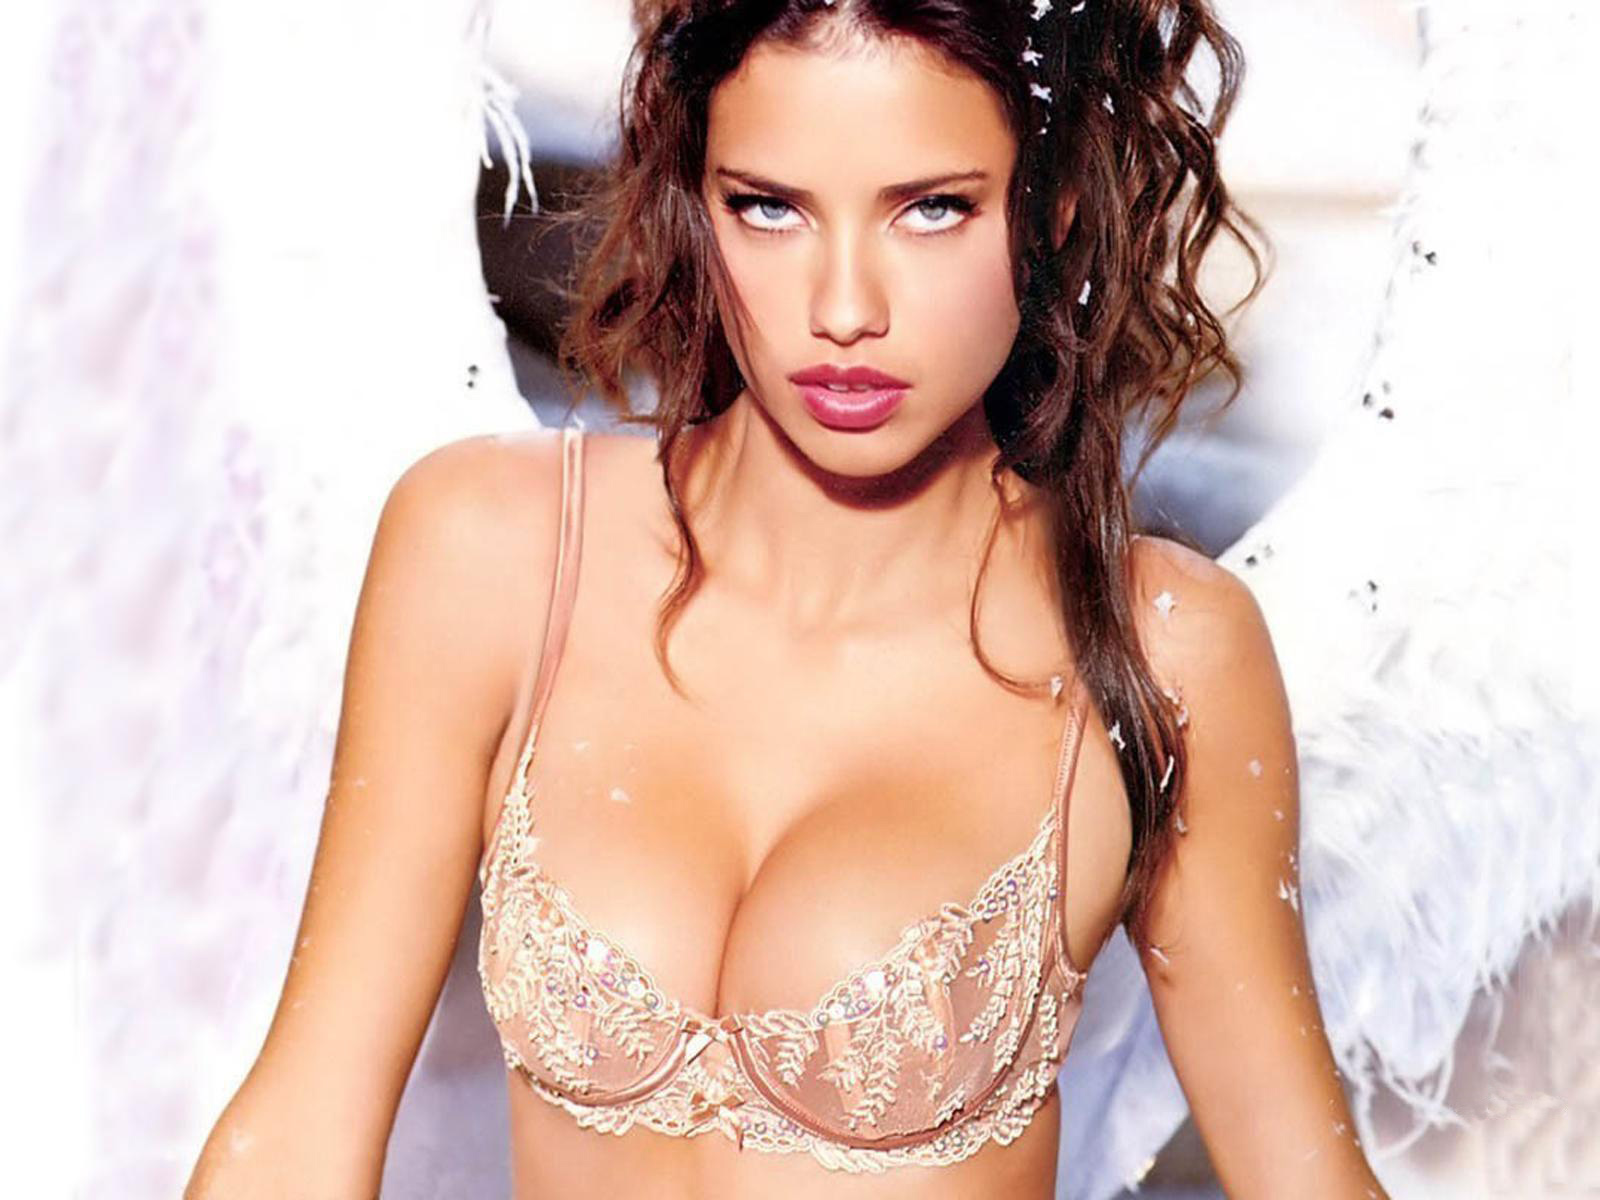 adriana lima photos - photo #1